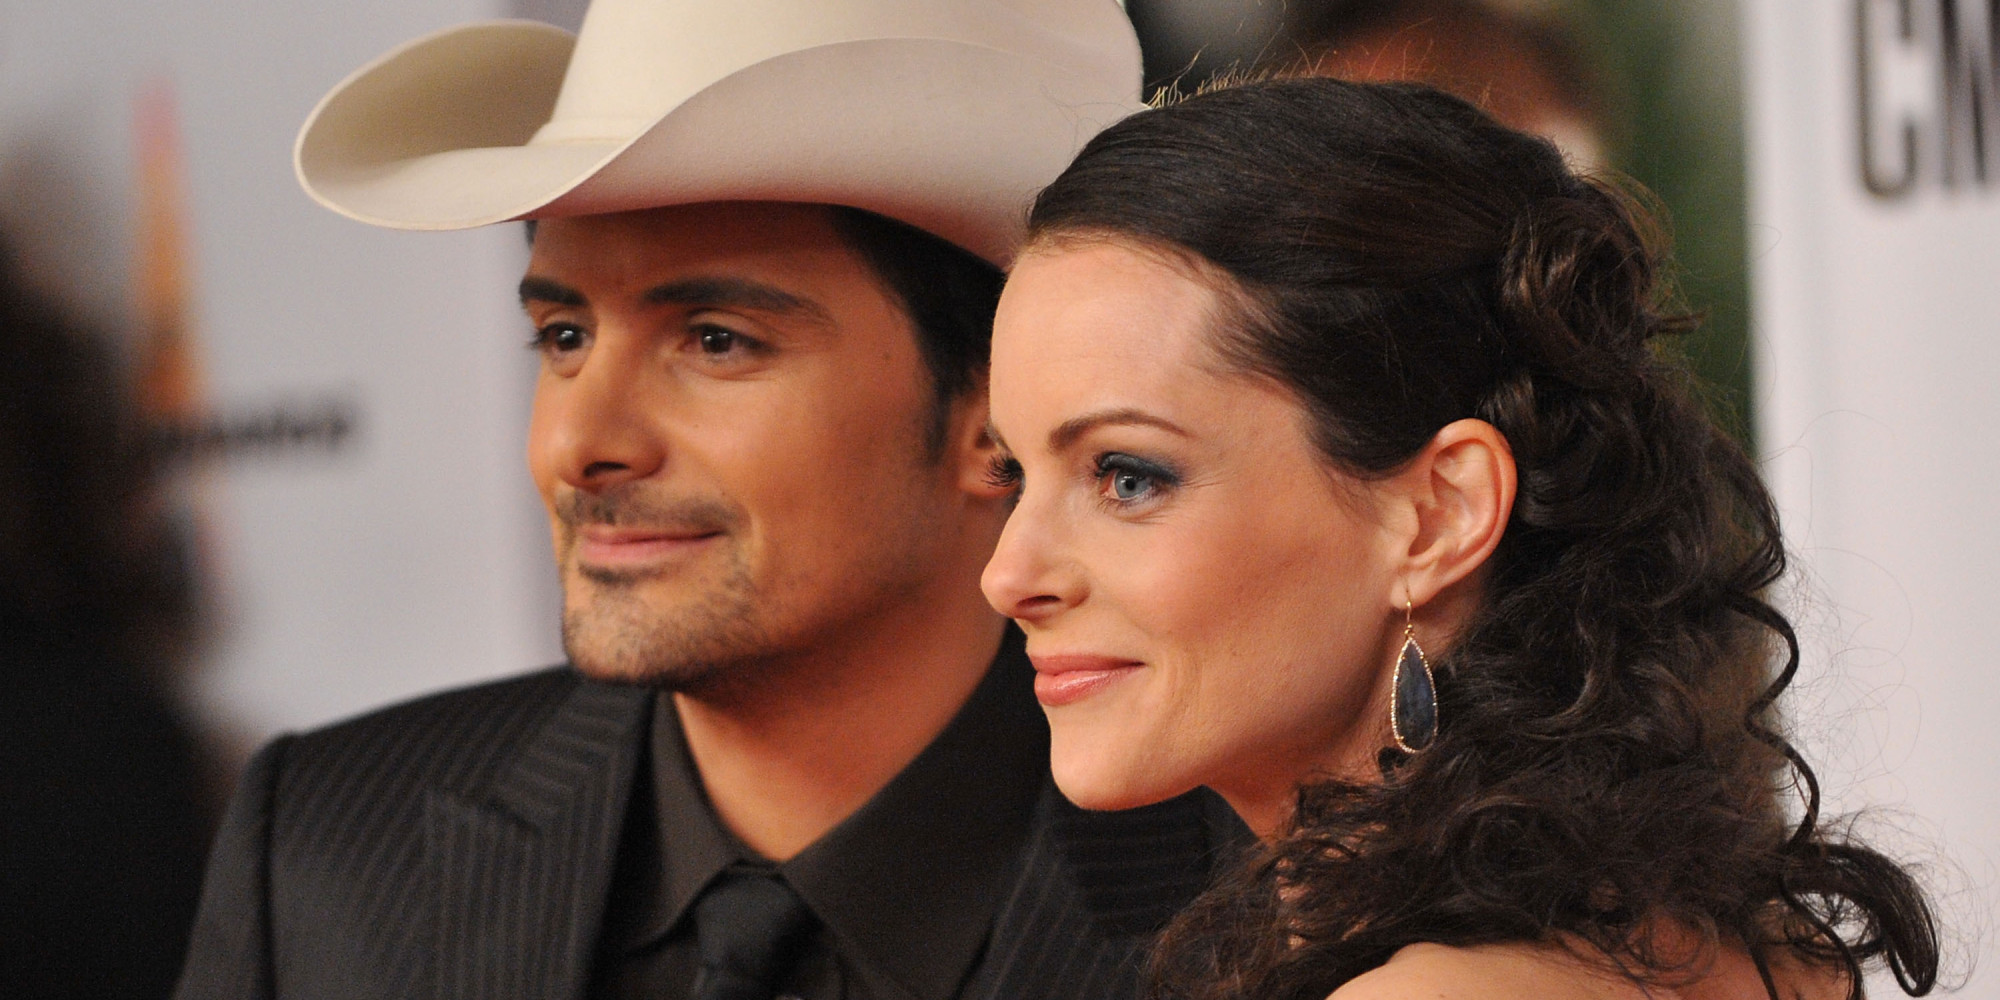 Brad Paisley Wife Kimberly Williams Victims Of Online Cancer Hoax Huffpost